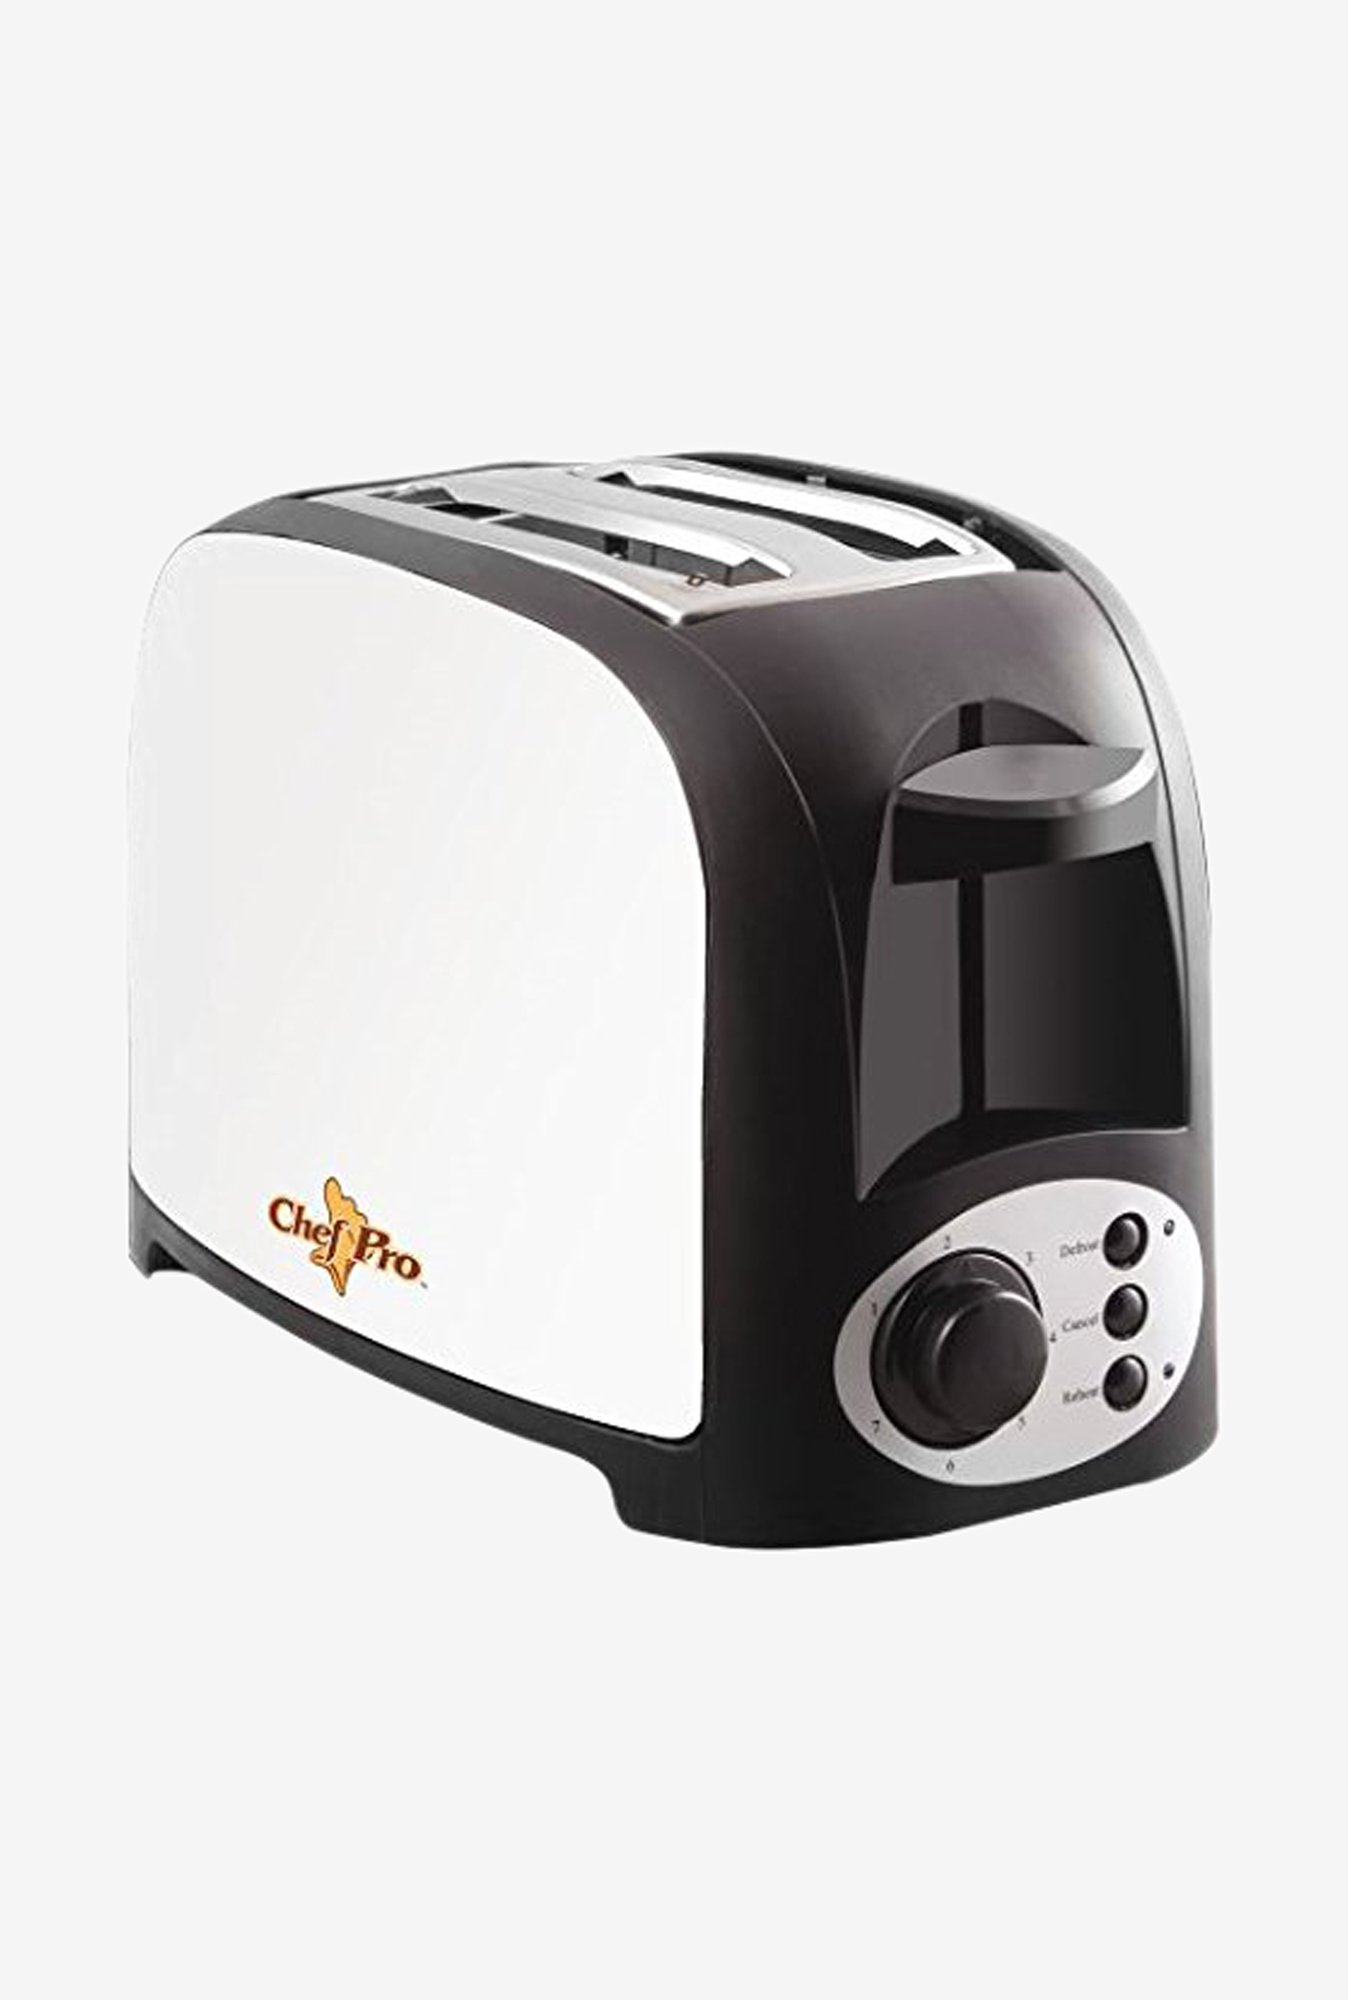 Chef Pro CPT542 2 Slice Pop-Up Toaster (White)